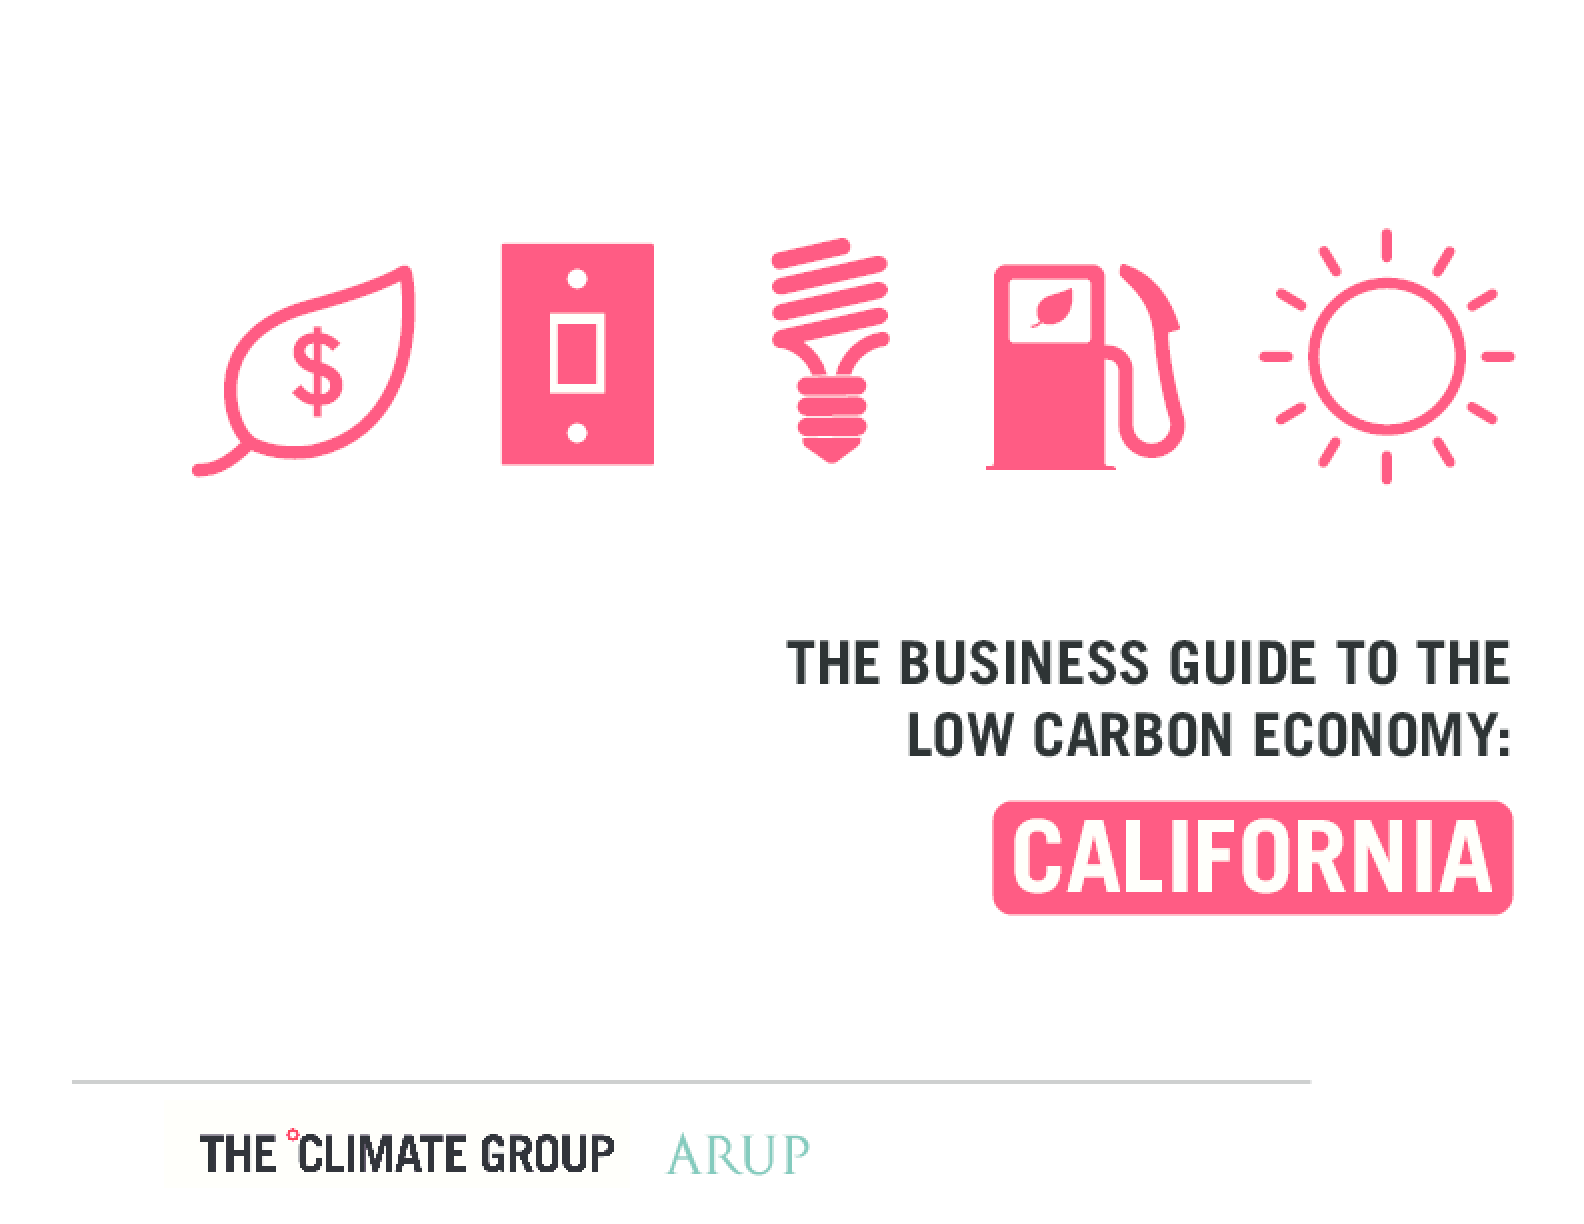 The Business Guide to the Low Carbon Economy: California